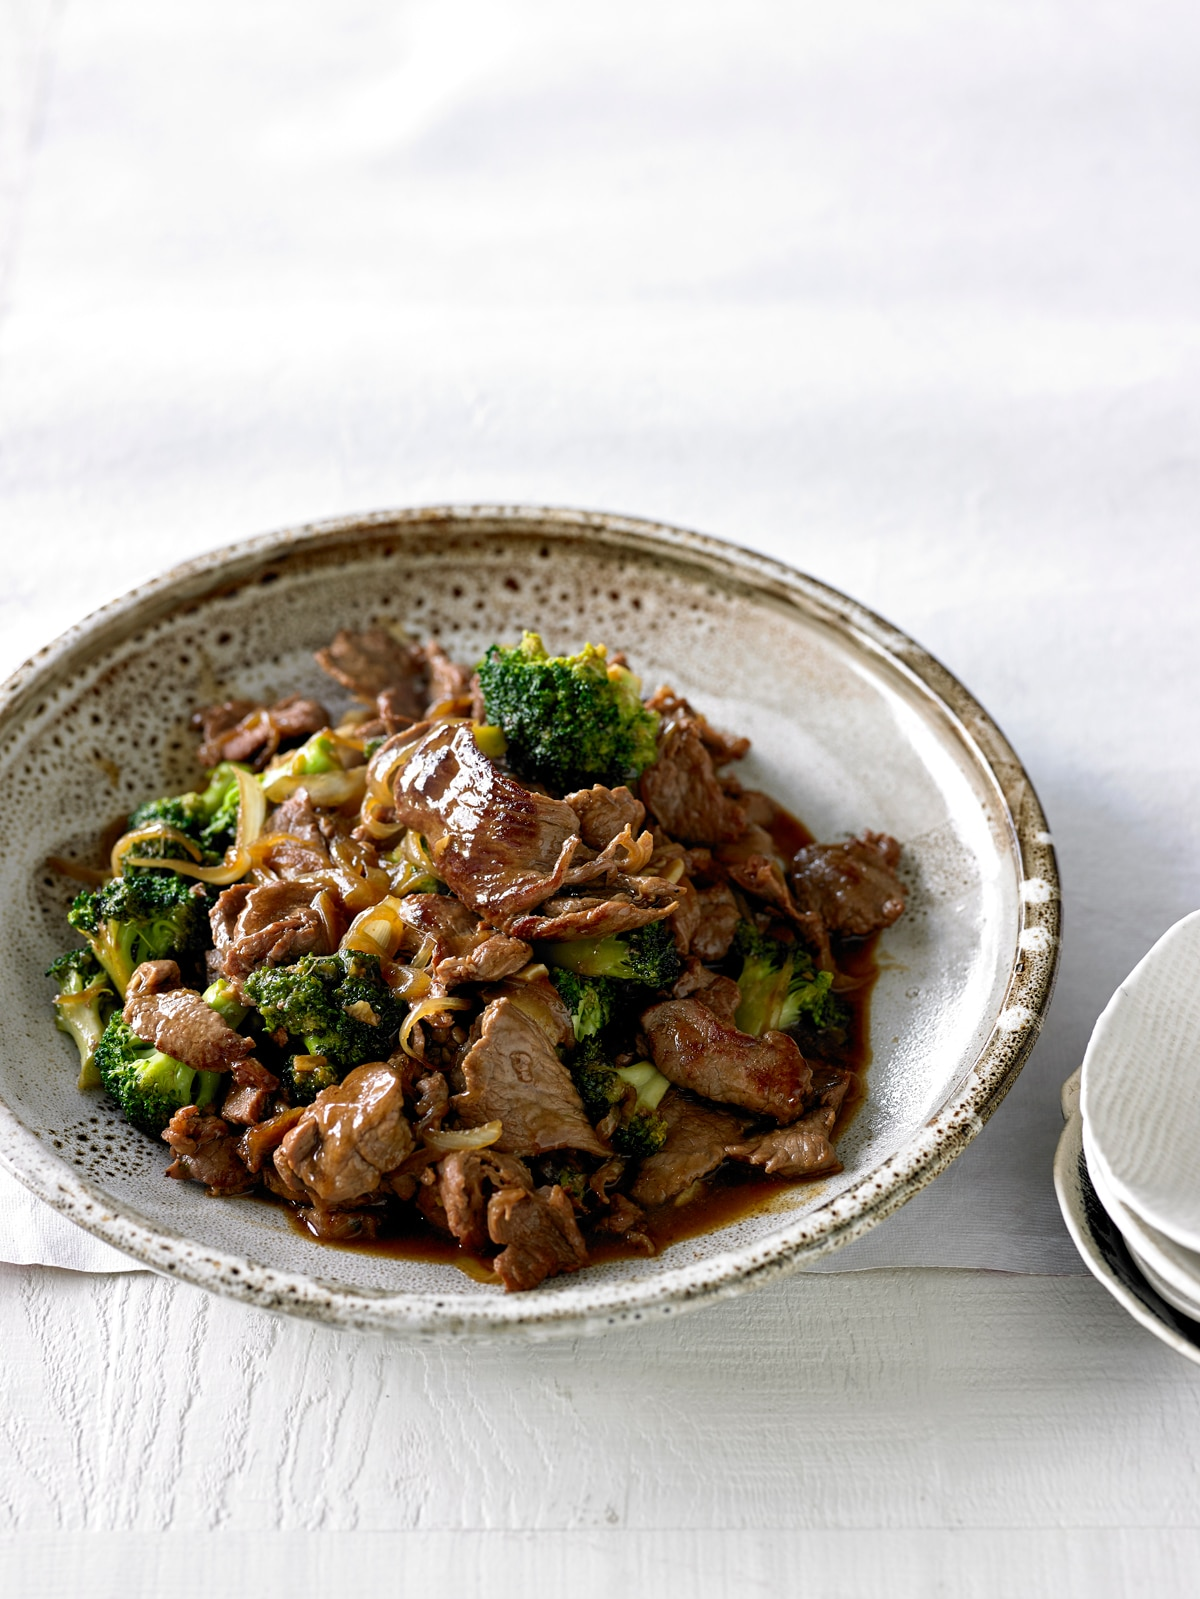 Beef with broccoli and oyster sauce stir fry sbs food beef with broccoli and oyster sauce httpssbsfoodrecipesbeef broccoli and oyster sauce forumfinder Images